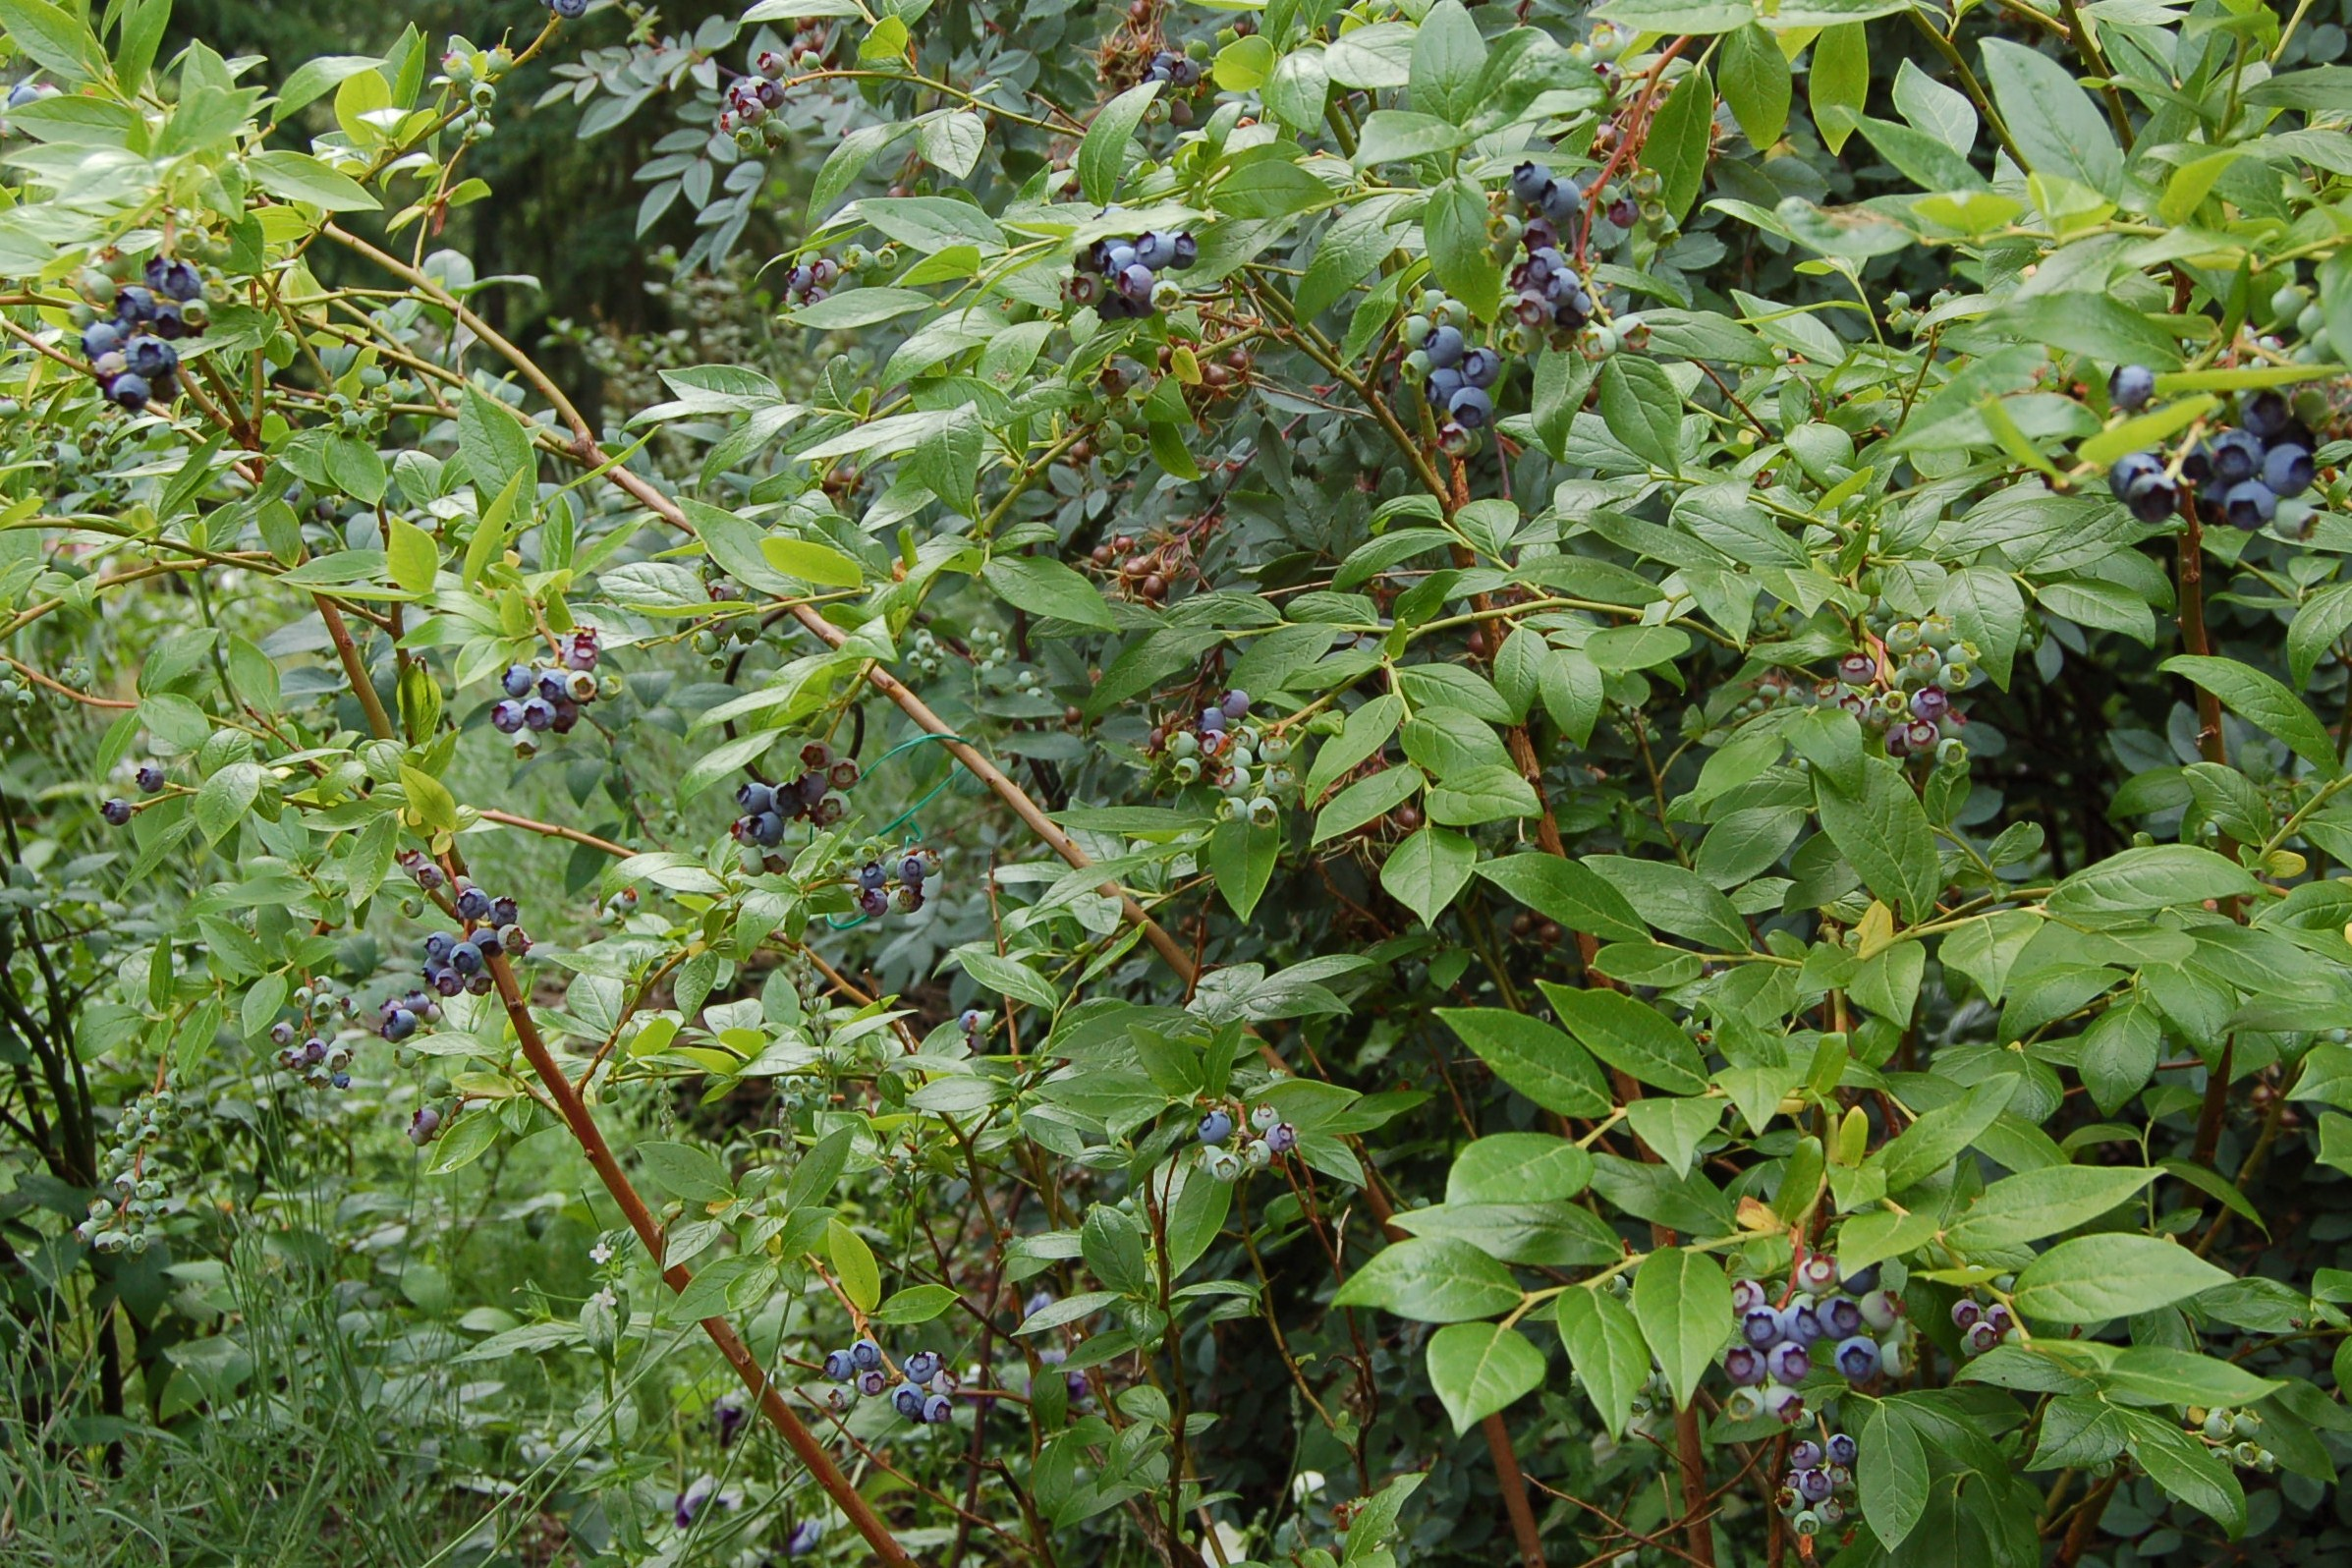 Blueberries, ready to harvest